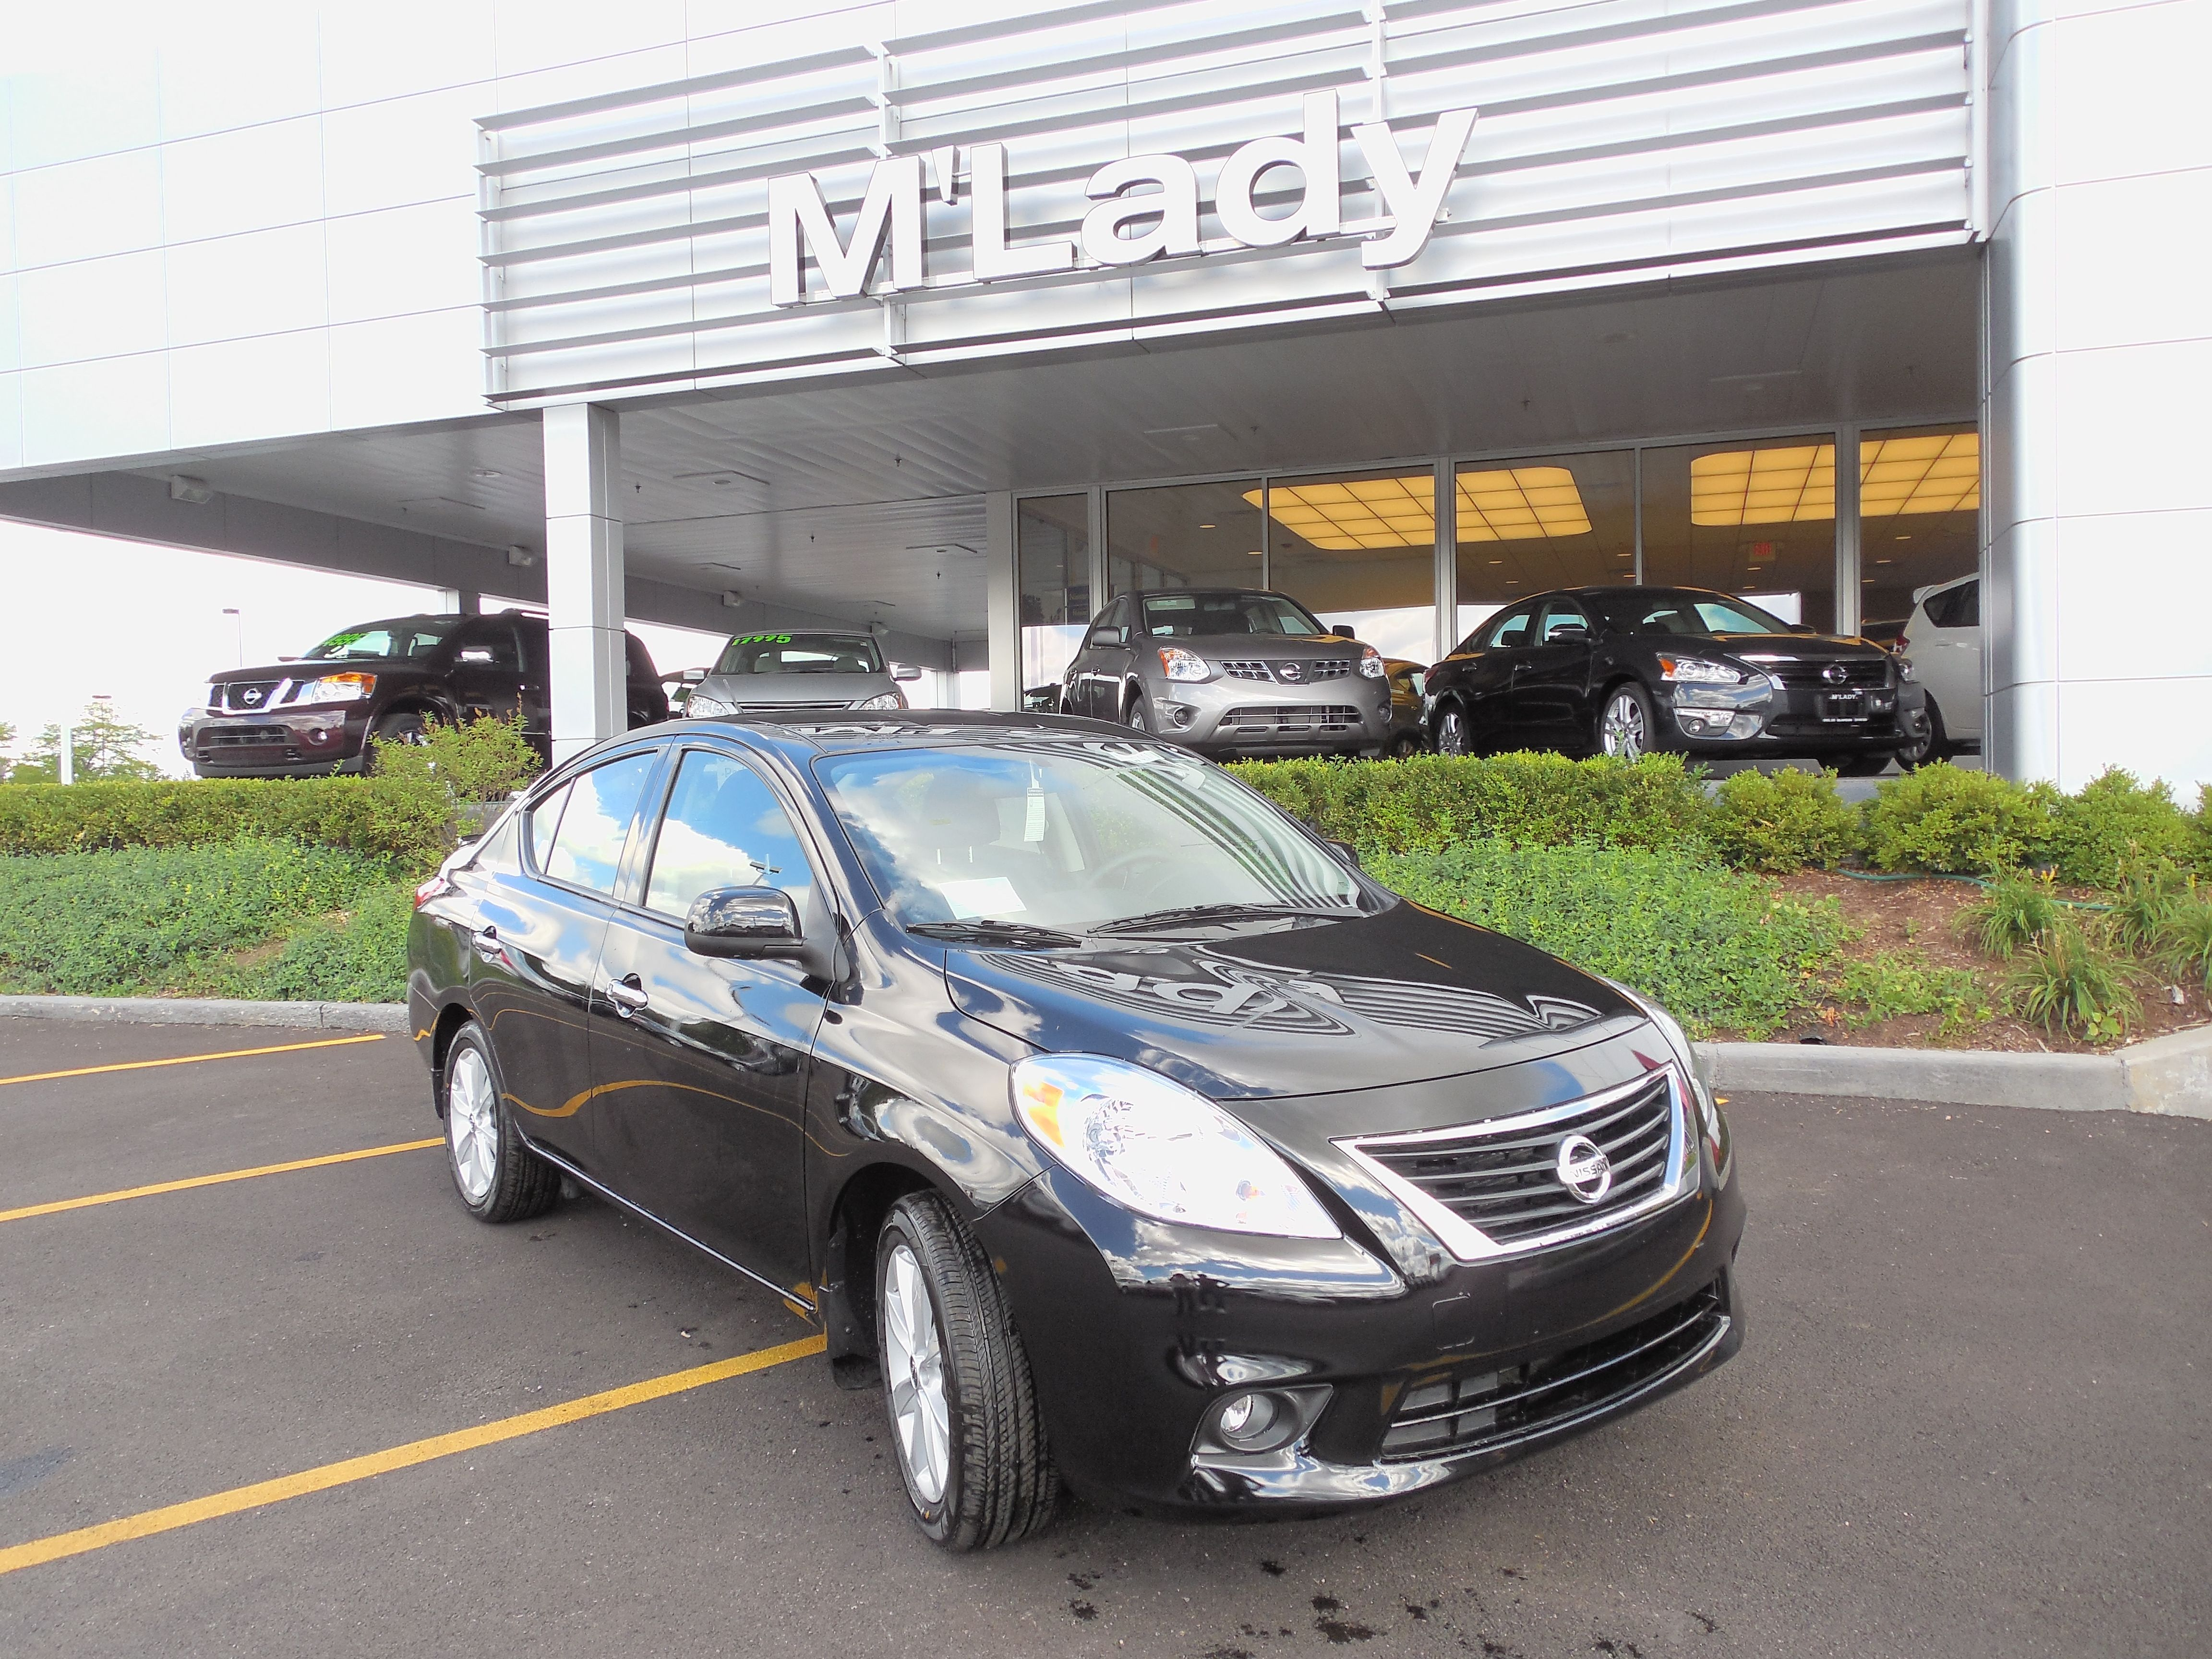 2014 Nissan Sentra Just Arrived At Mu0027Lady Nissan! Come In And Test Drive  One Today :) Mu0027Lady Nissan 5656 Northwest Highway, Crystal Lake, IL   (815)  459  ...